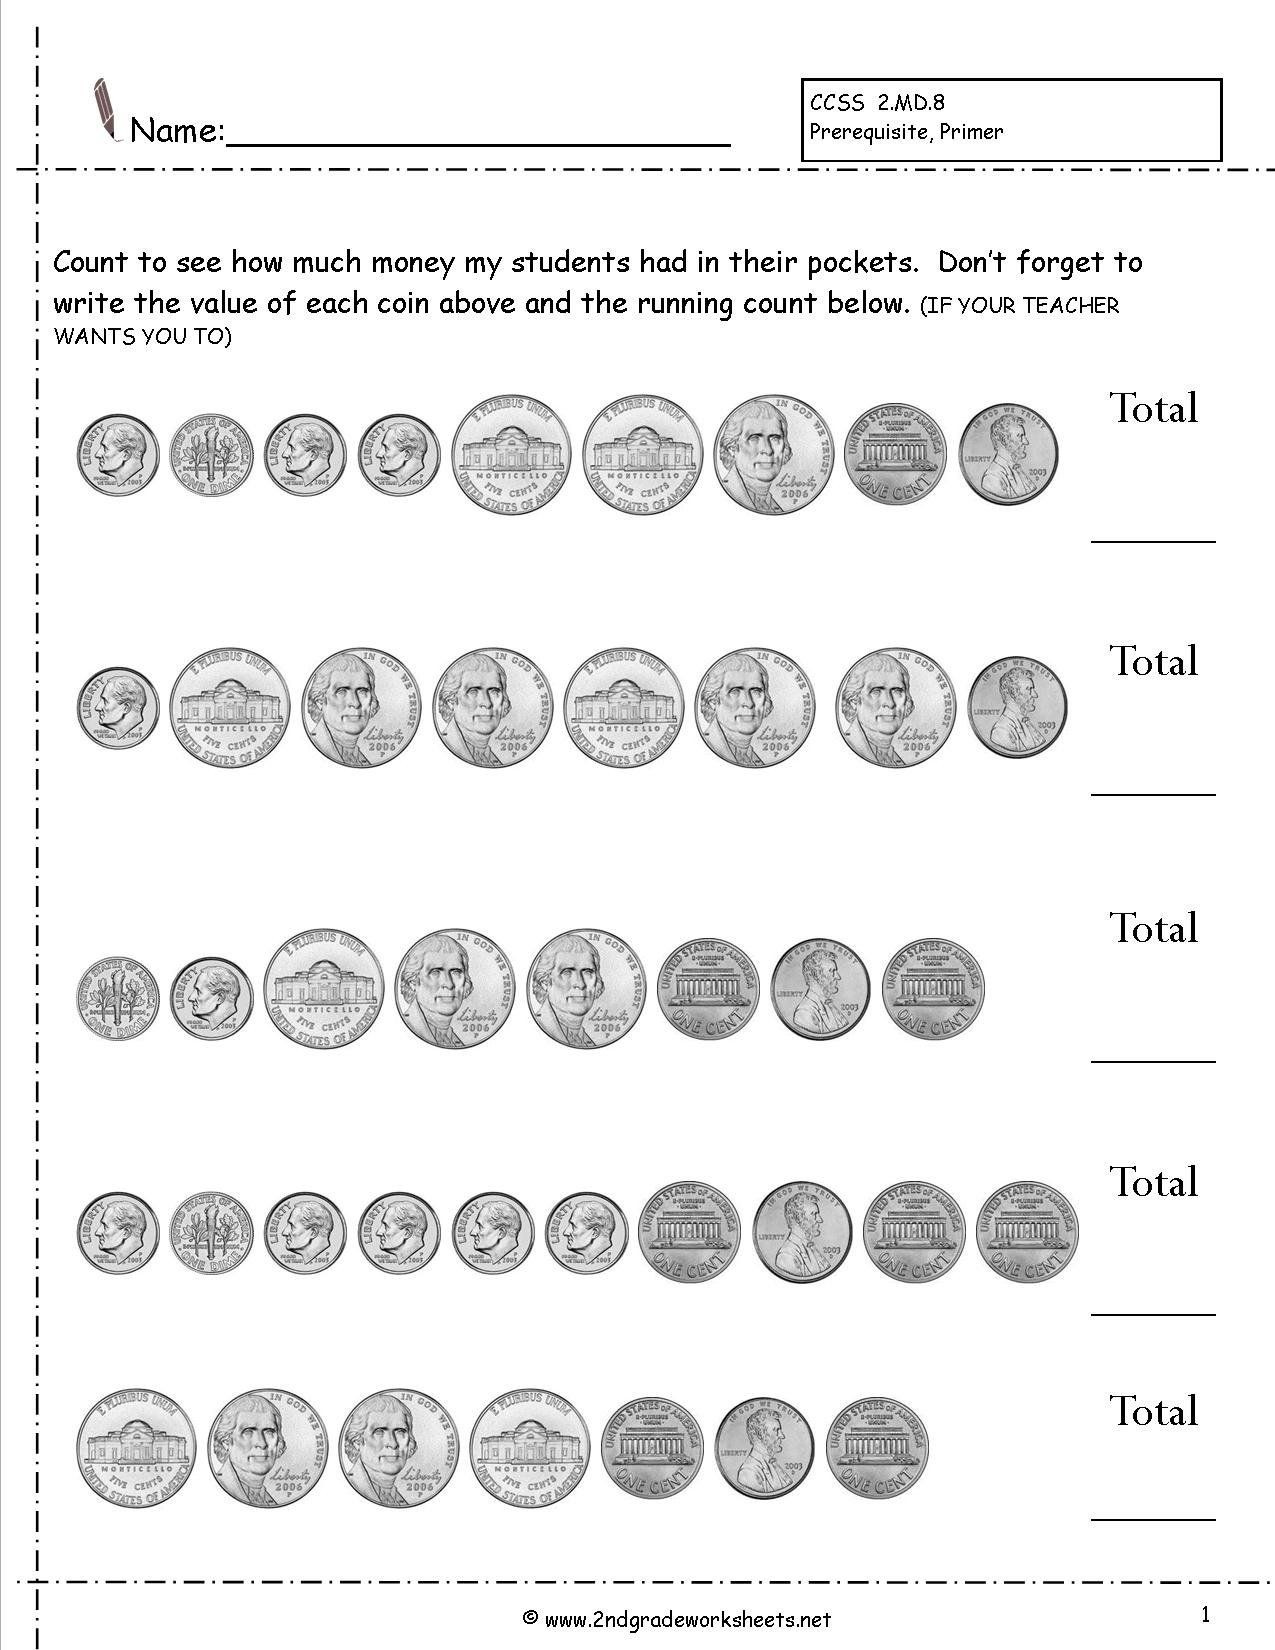 Counting Coins Worksheets First Grade Counting Coins Worksheets In 2020